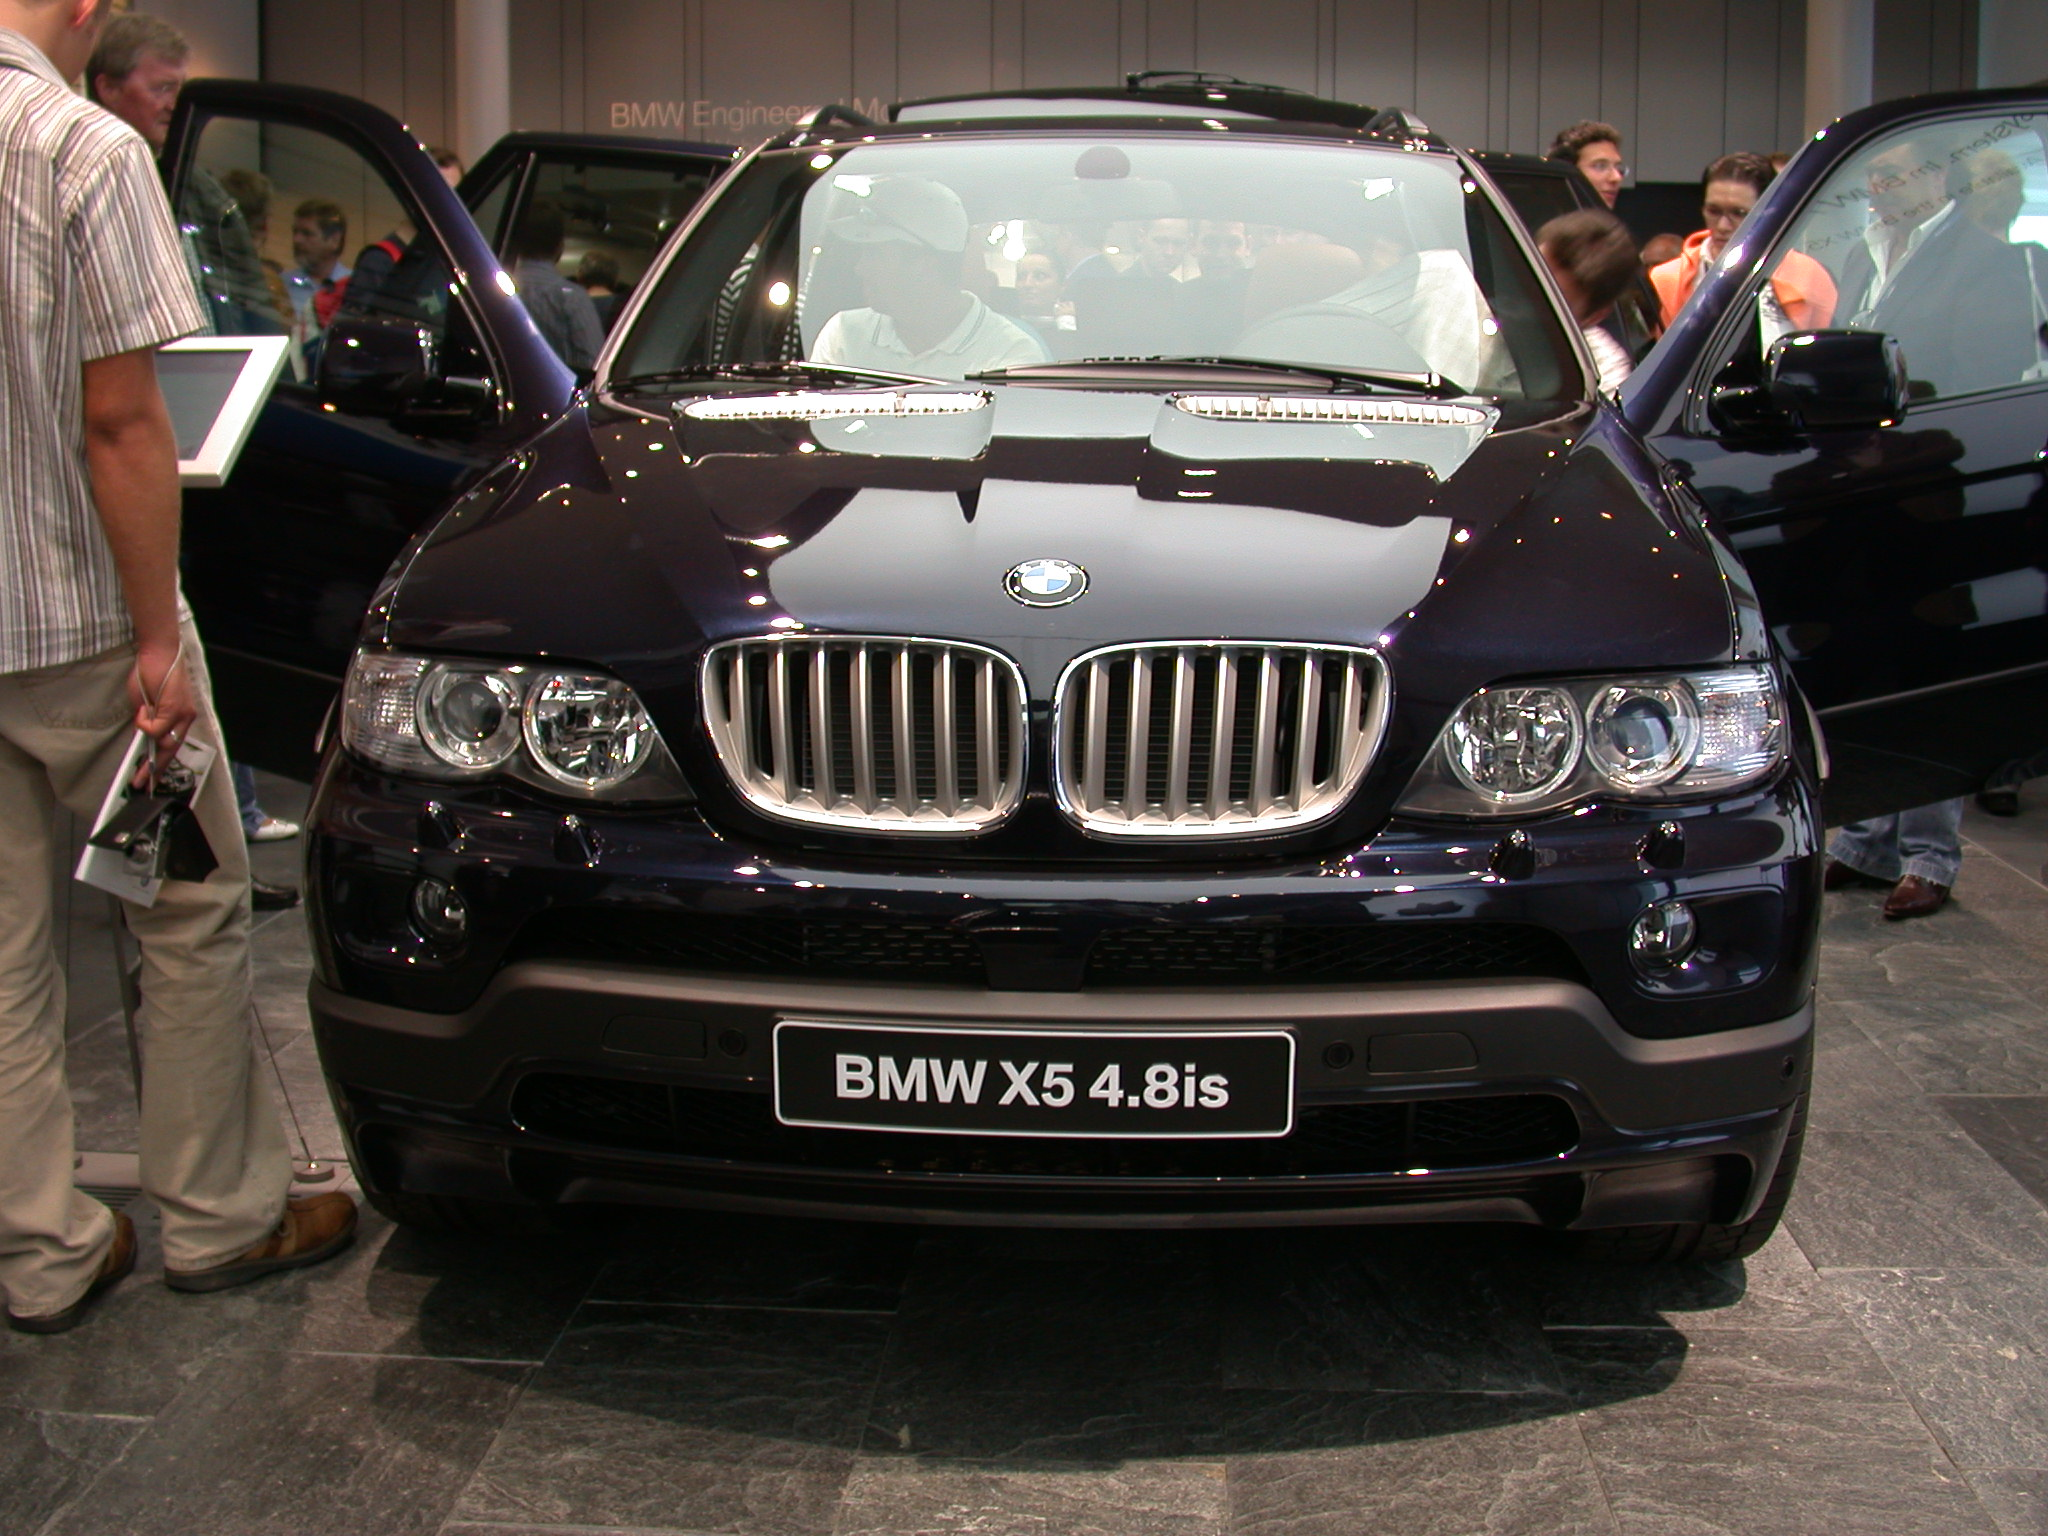 file bmw x5 iaa wikimedia commons. Black Bedroom Furniture Sets. Home Design Ideas